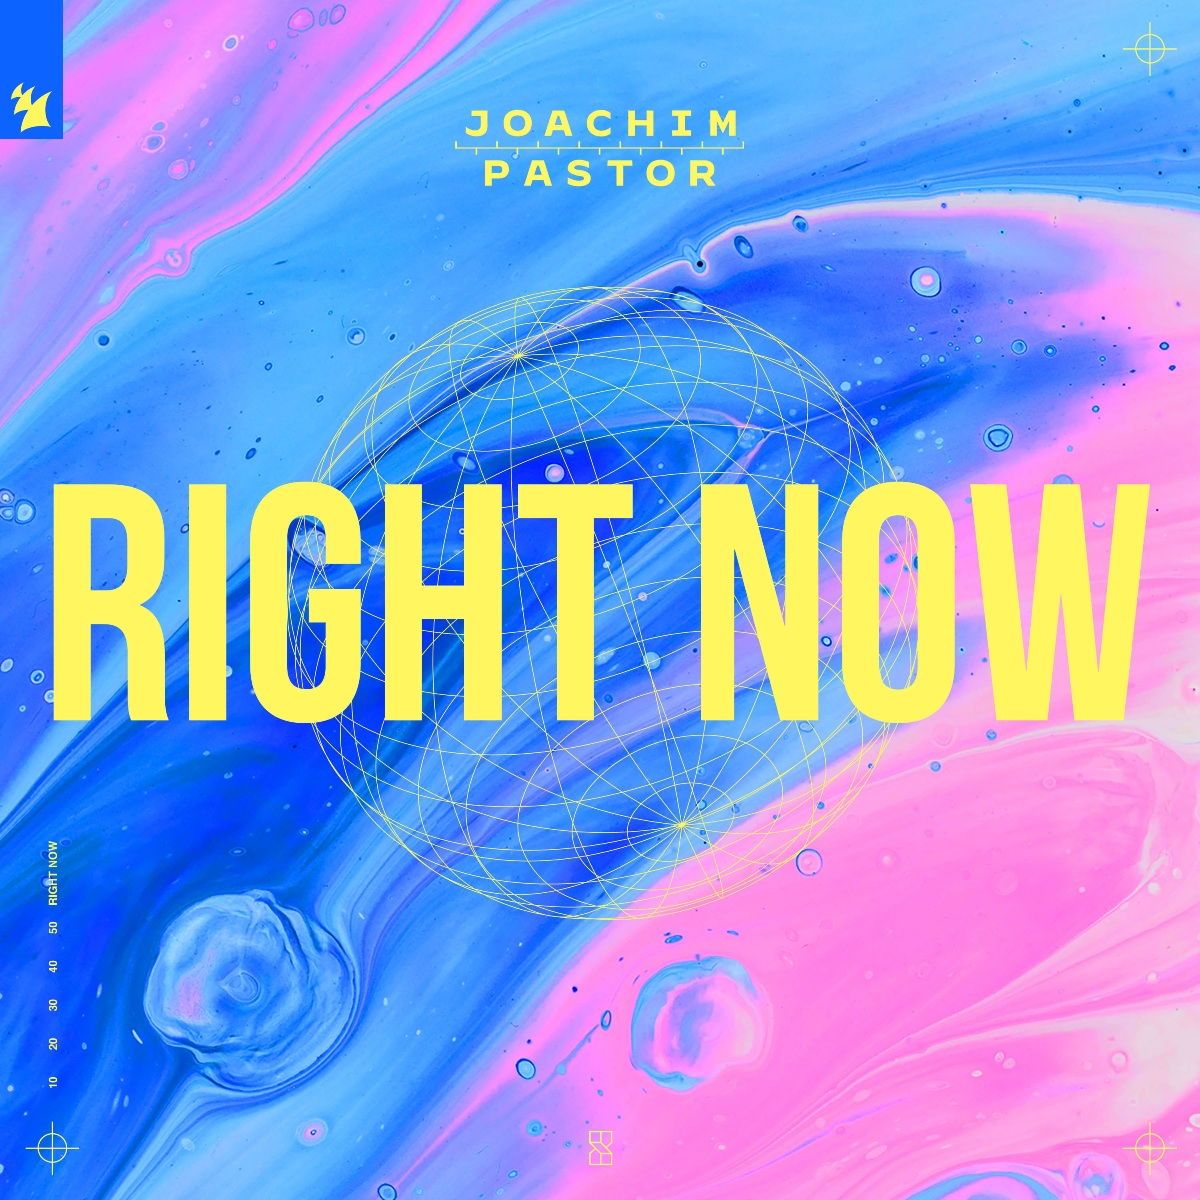 Artwork – Right Now (1)